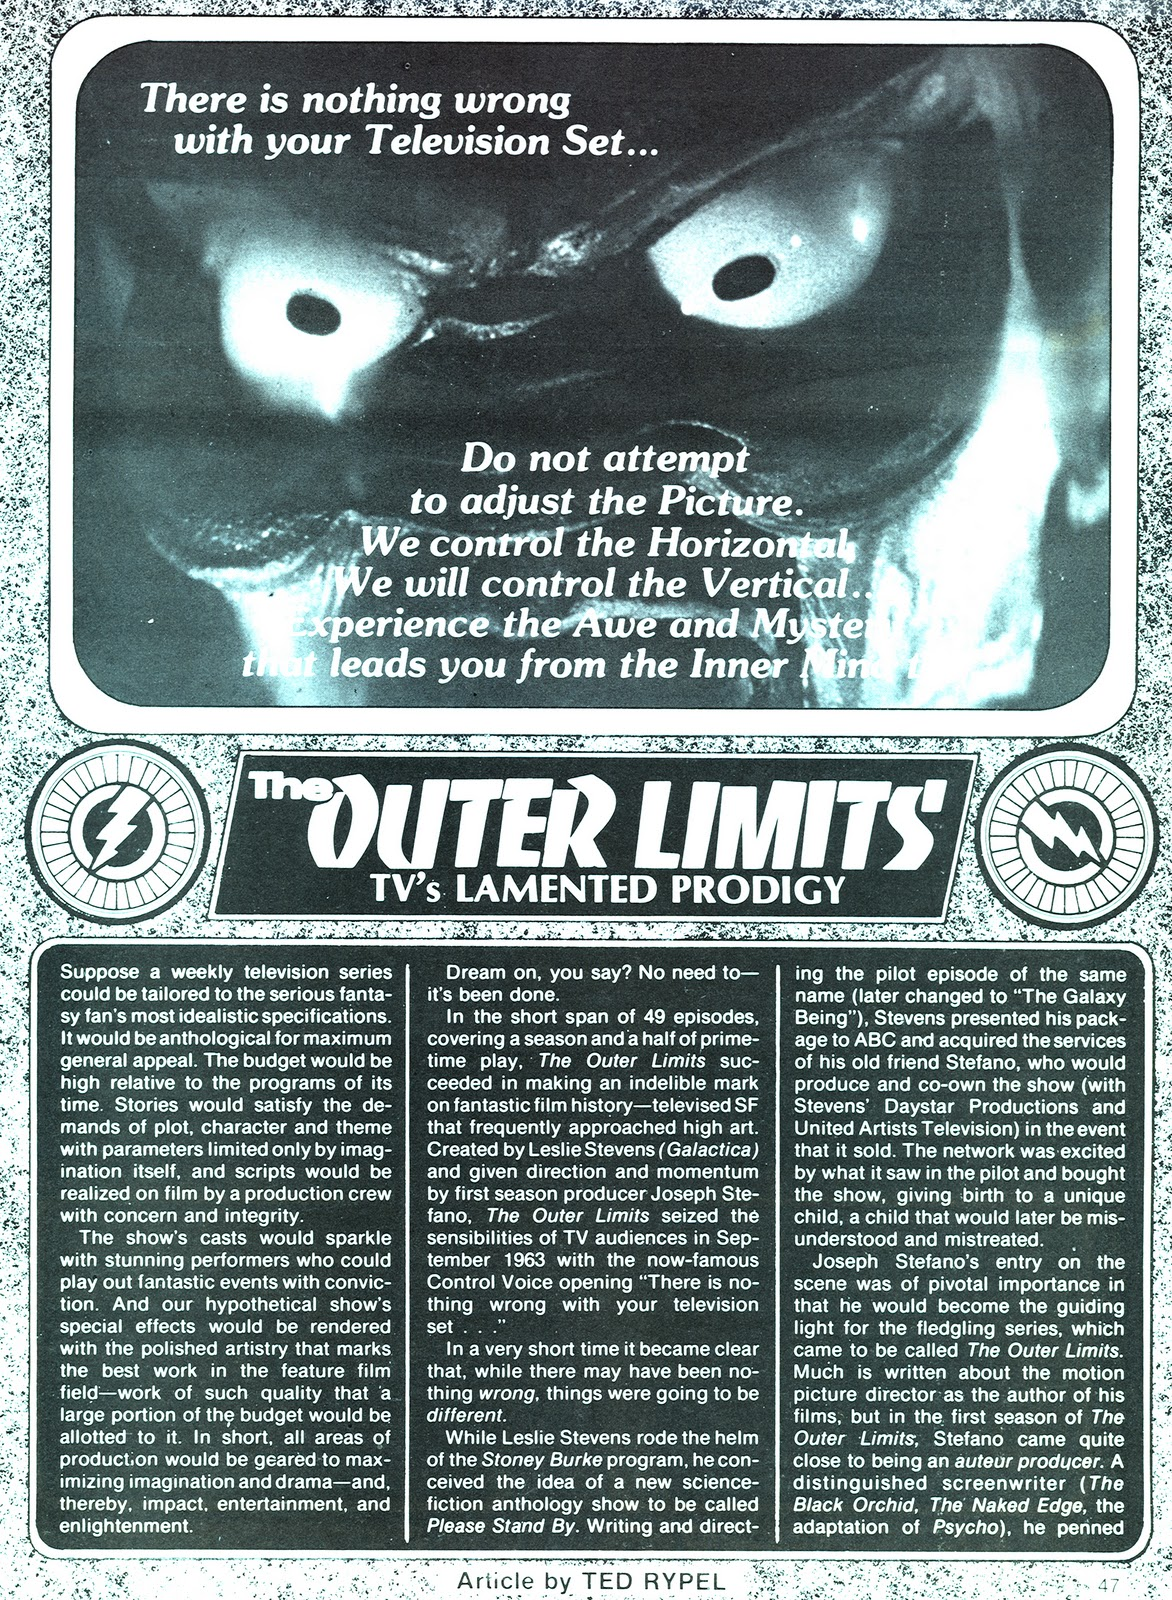 We Are Controlling Transmission: In The Outer Limits Tavern